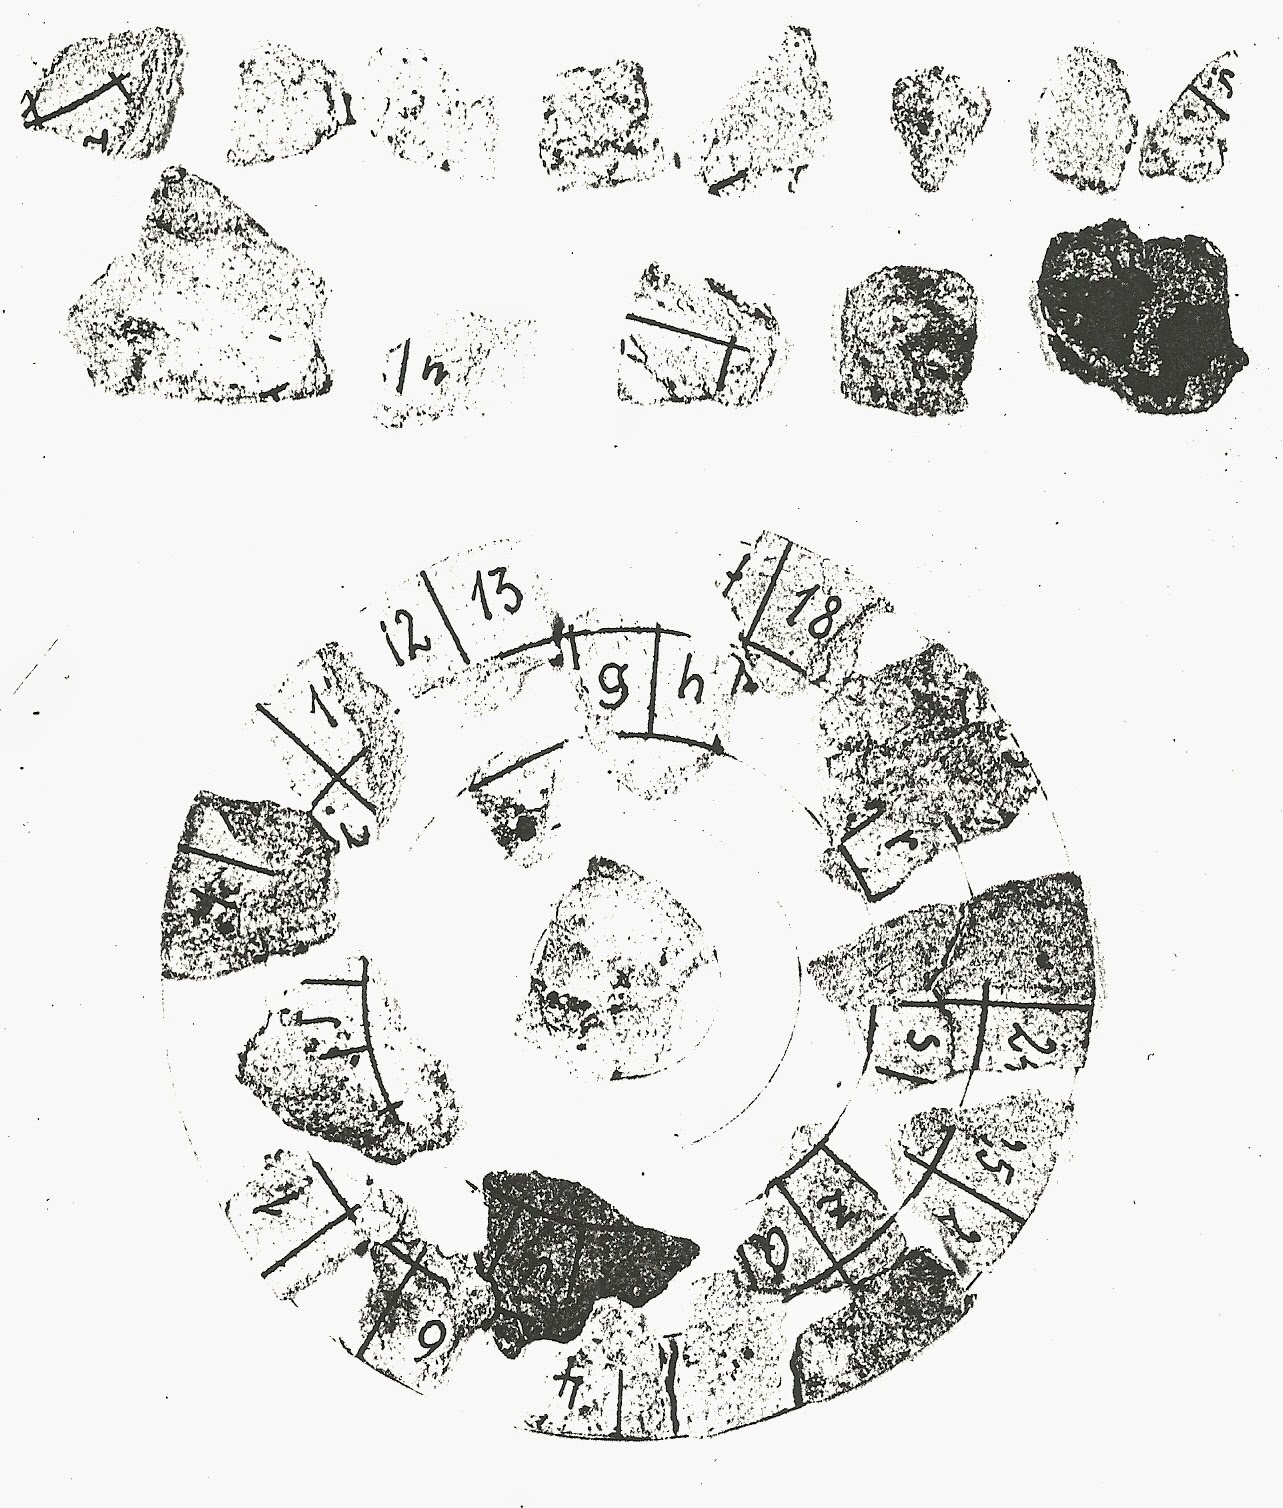 Outer circle of Josef Jakob's cipher disc.